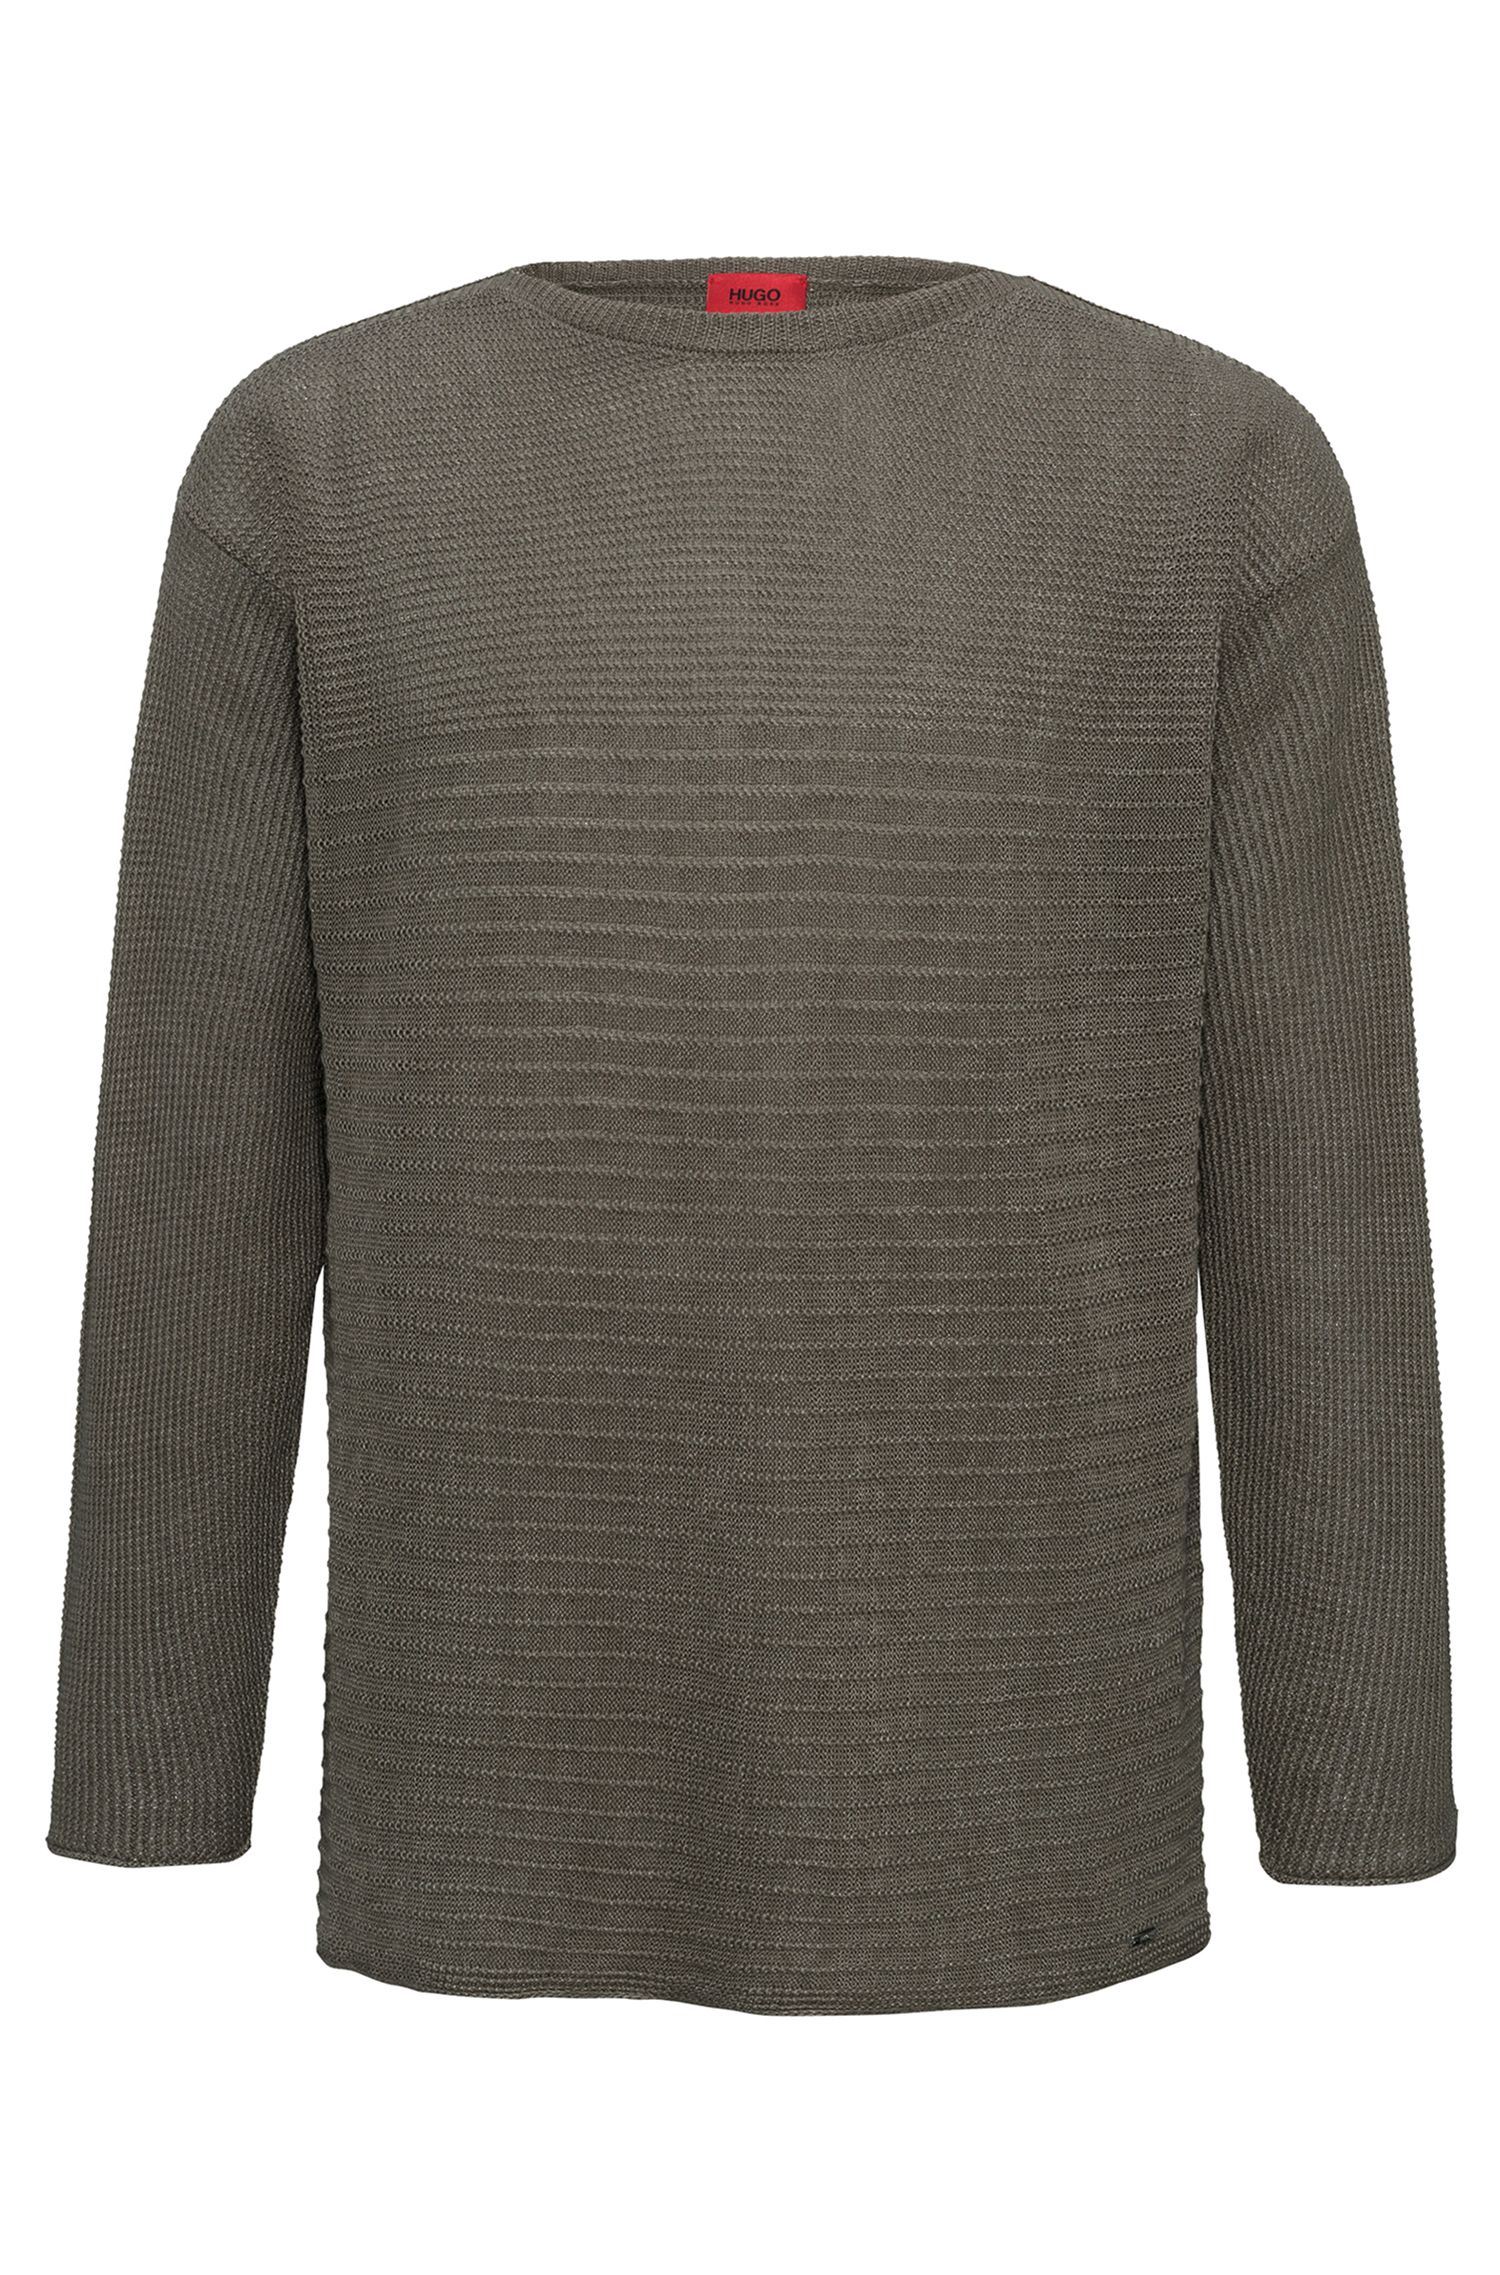 Knitted sweater in linen and cotton